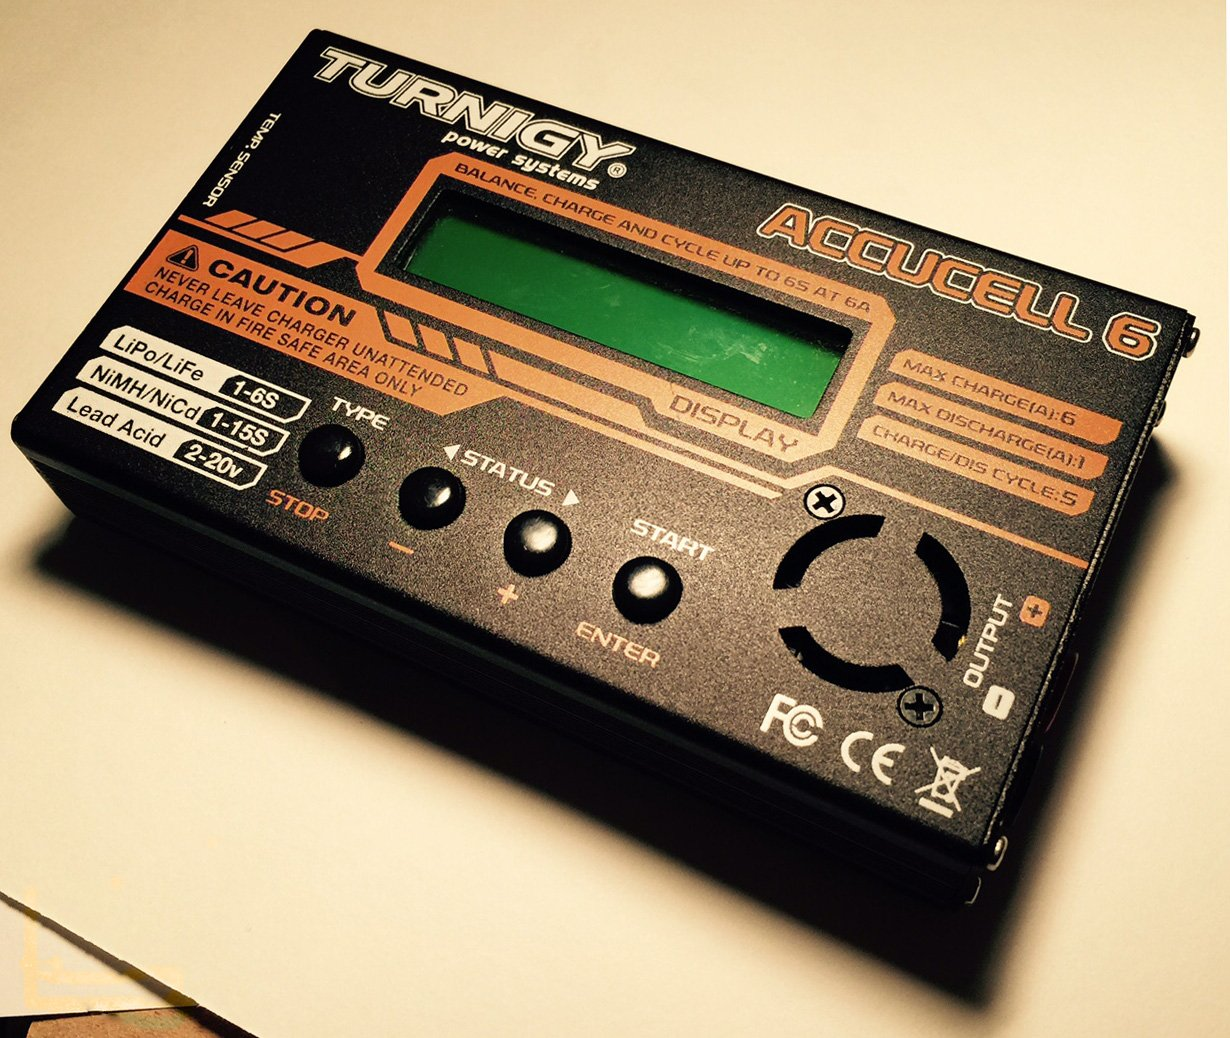 Turnigy Accucel-6 50W 6A Balancer Charger LiPo LiFe NiMh NiCd JST-XH w/ MANUAL!